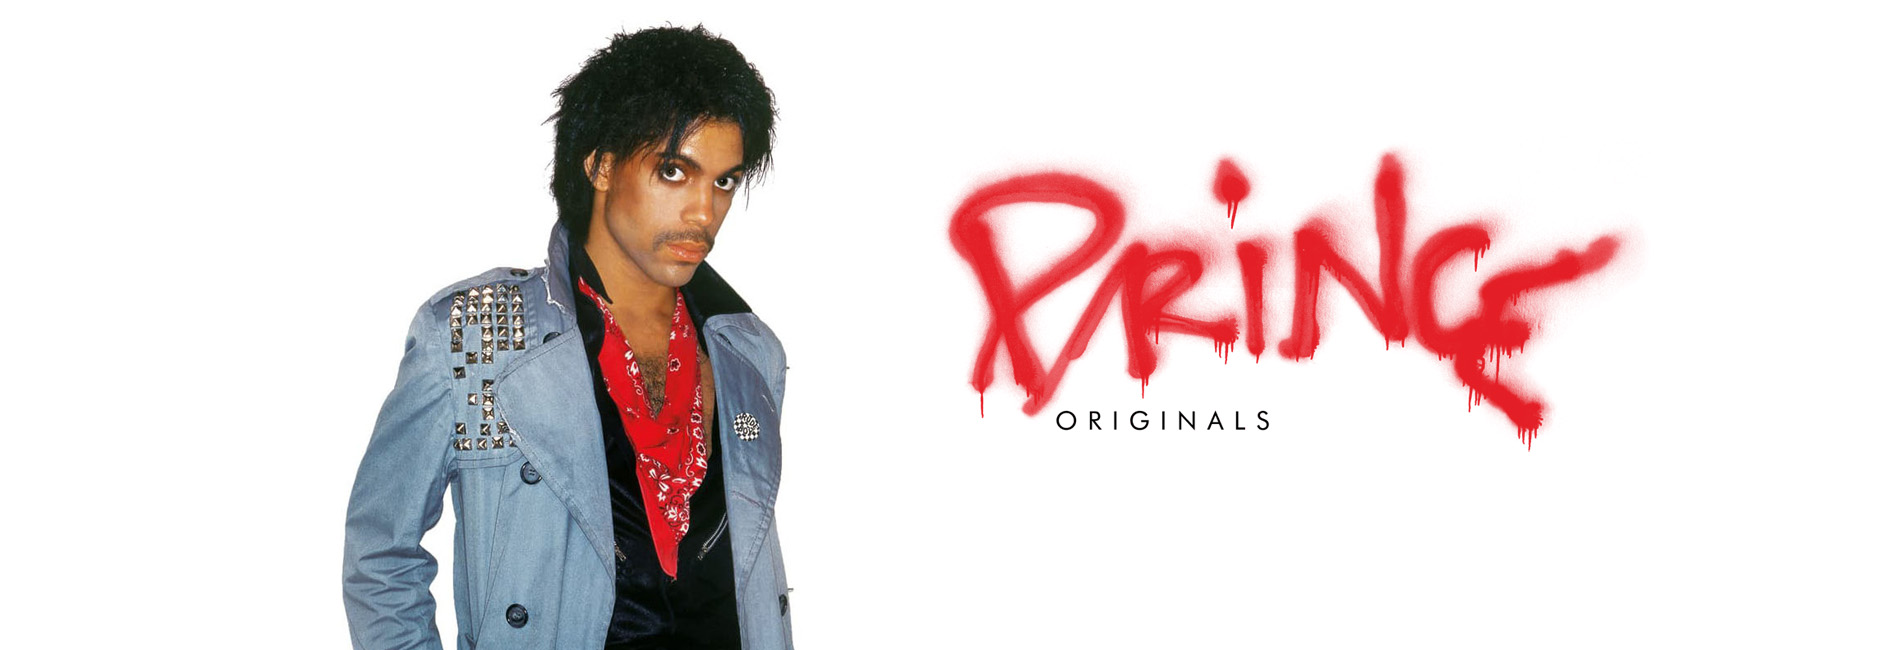 Image of Prince in a jean jacket.